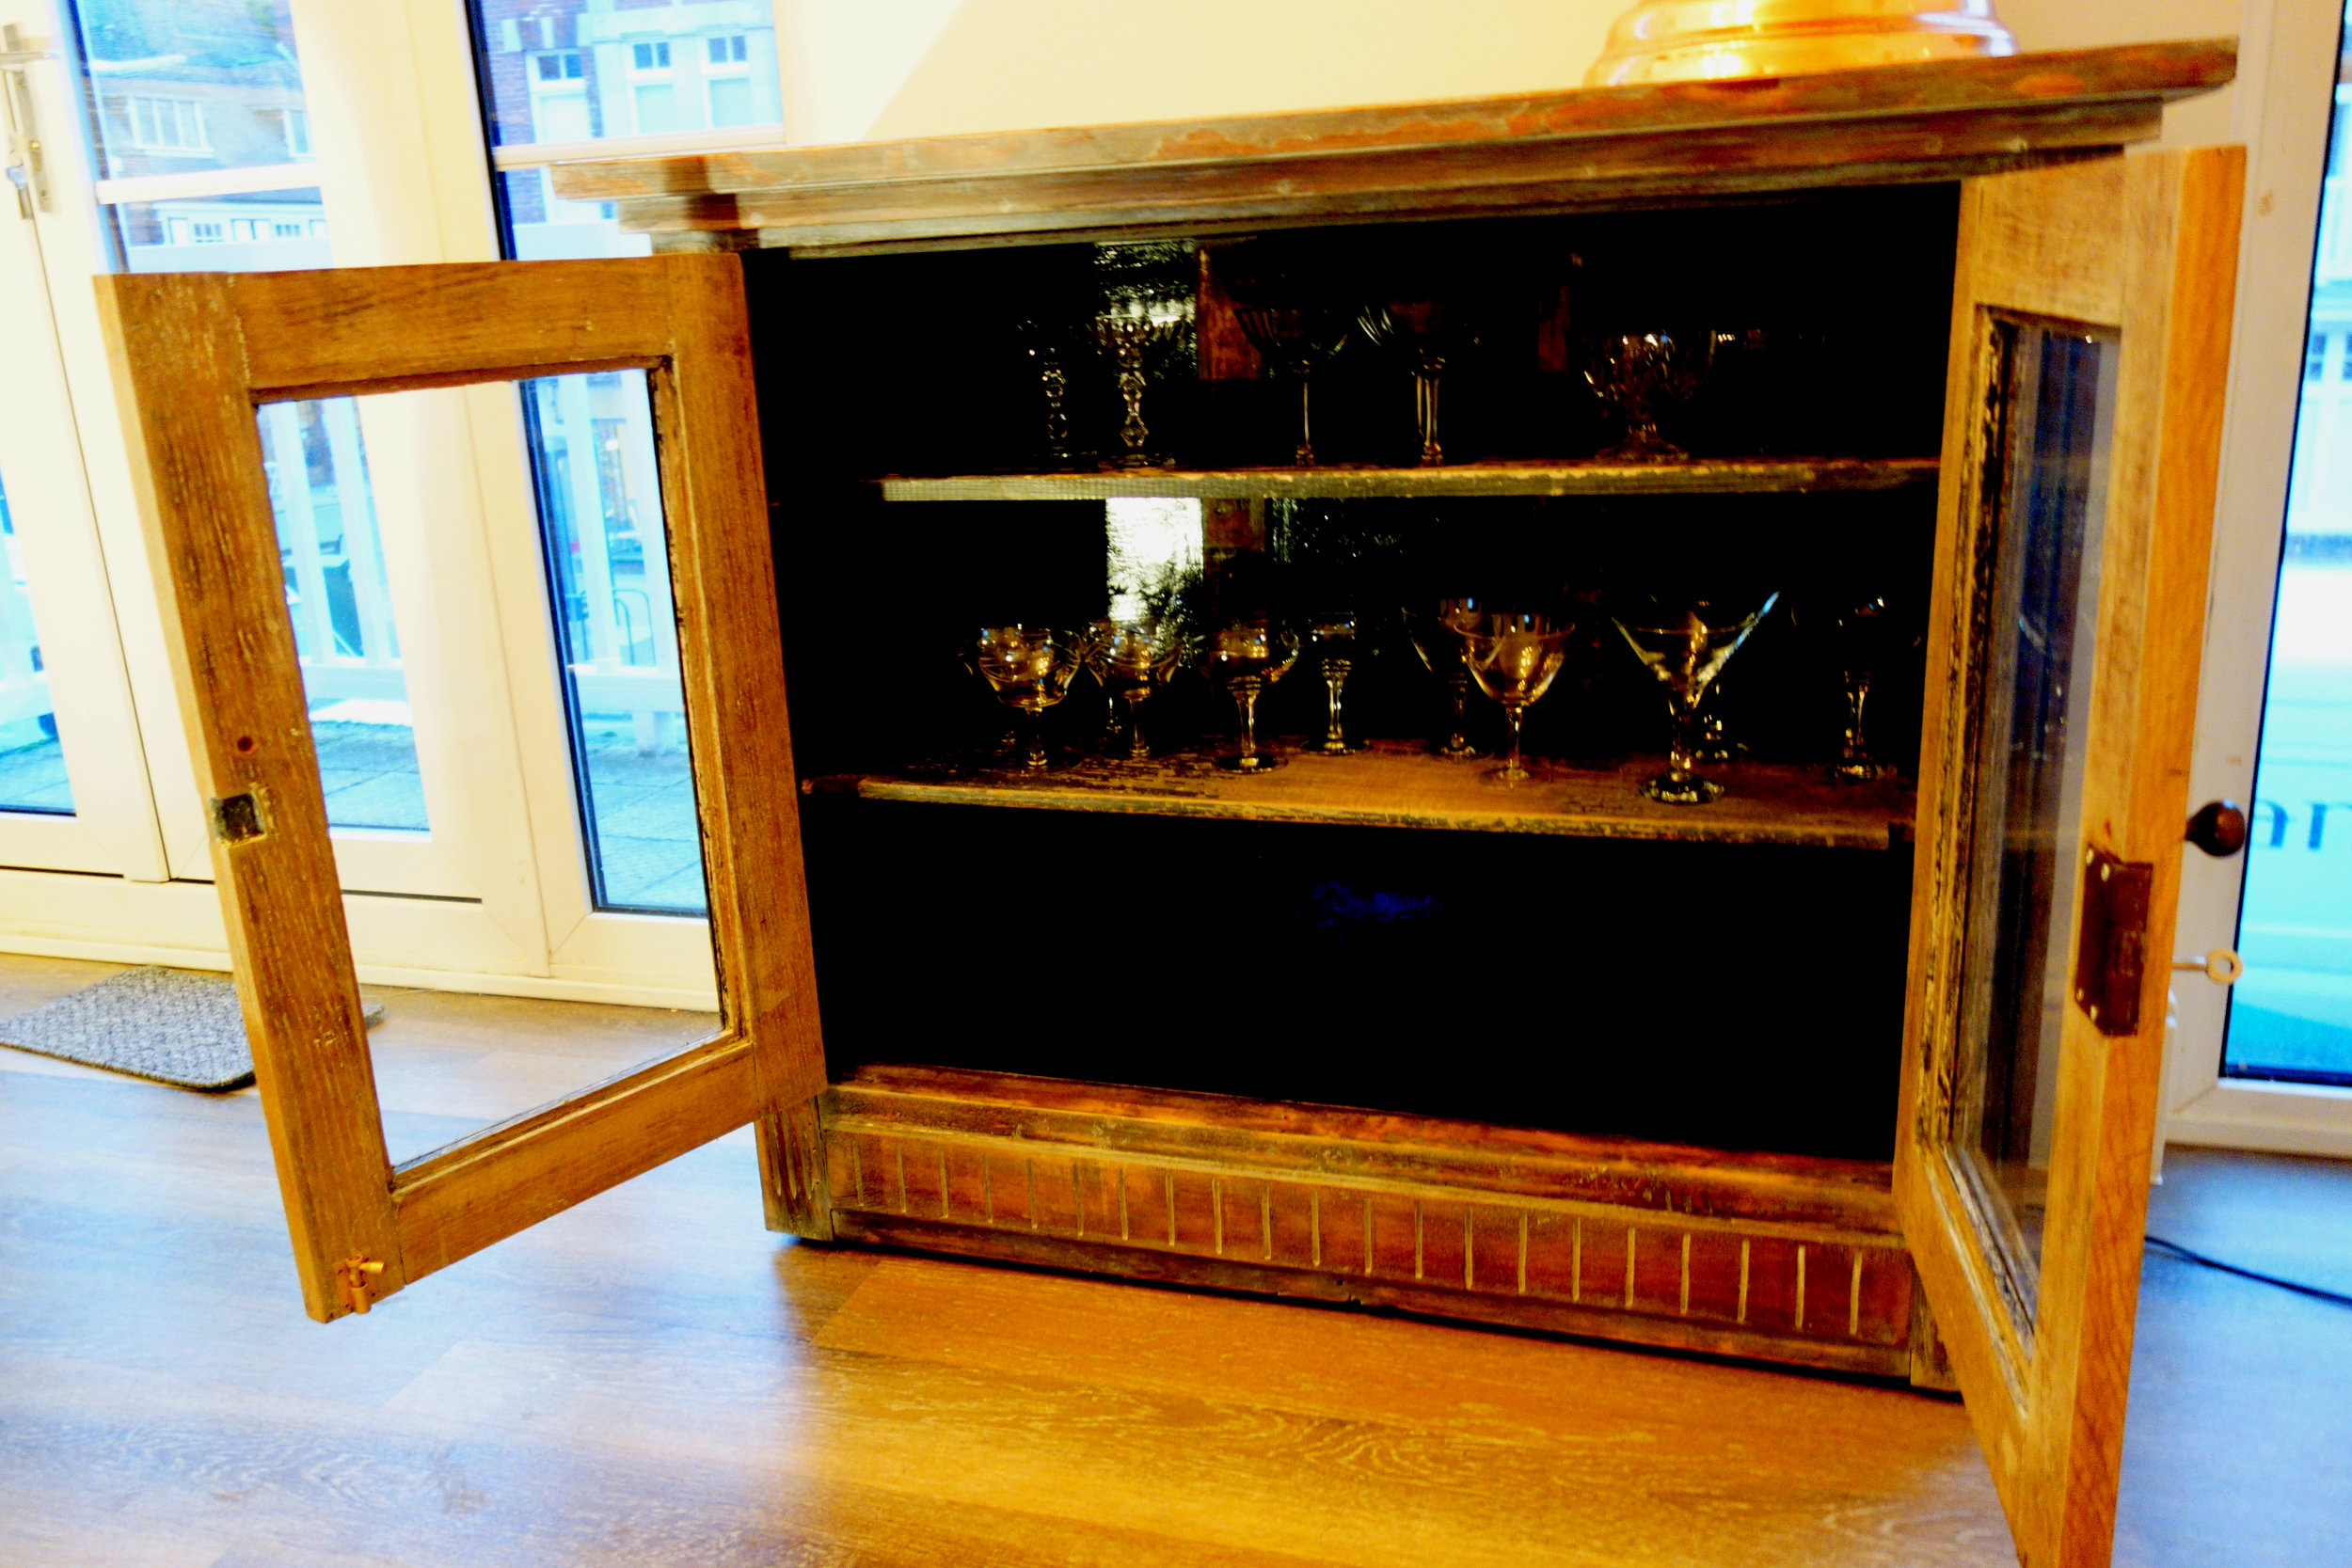 We have many preloved objects, either found, restored or built. - Mirrors, cabinets and lighting